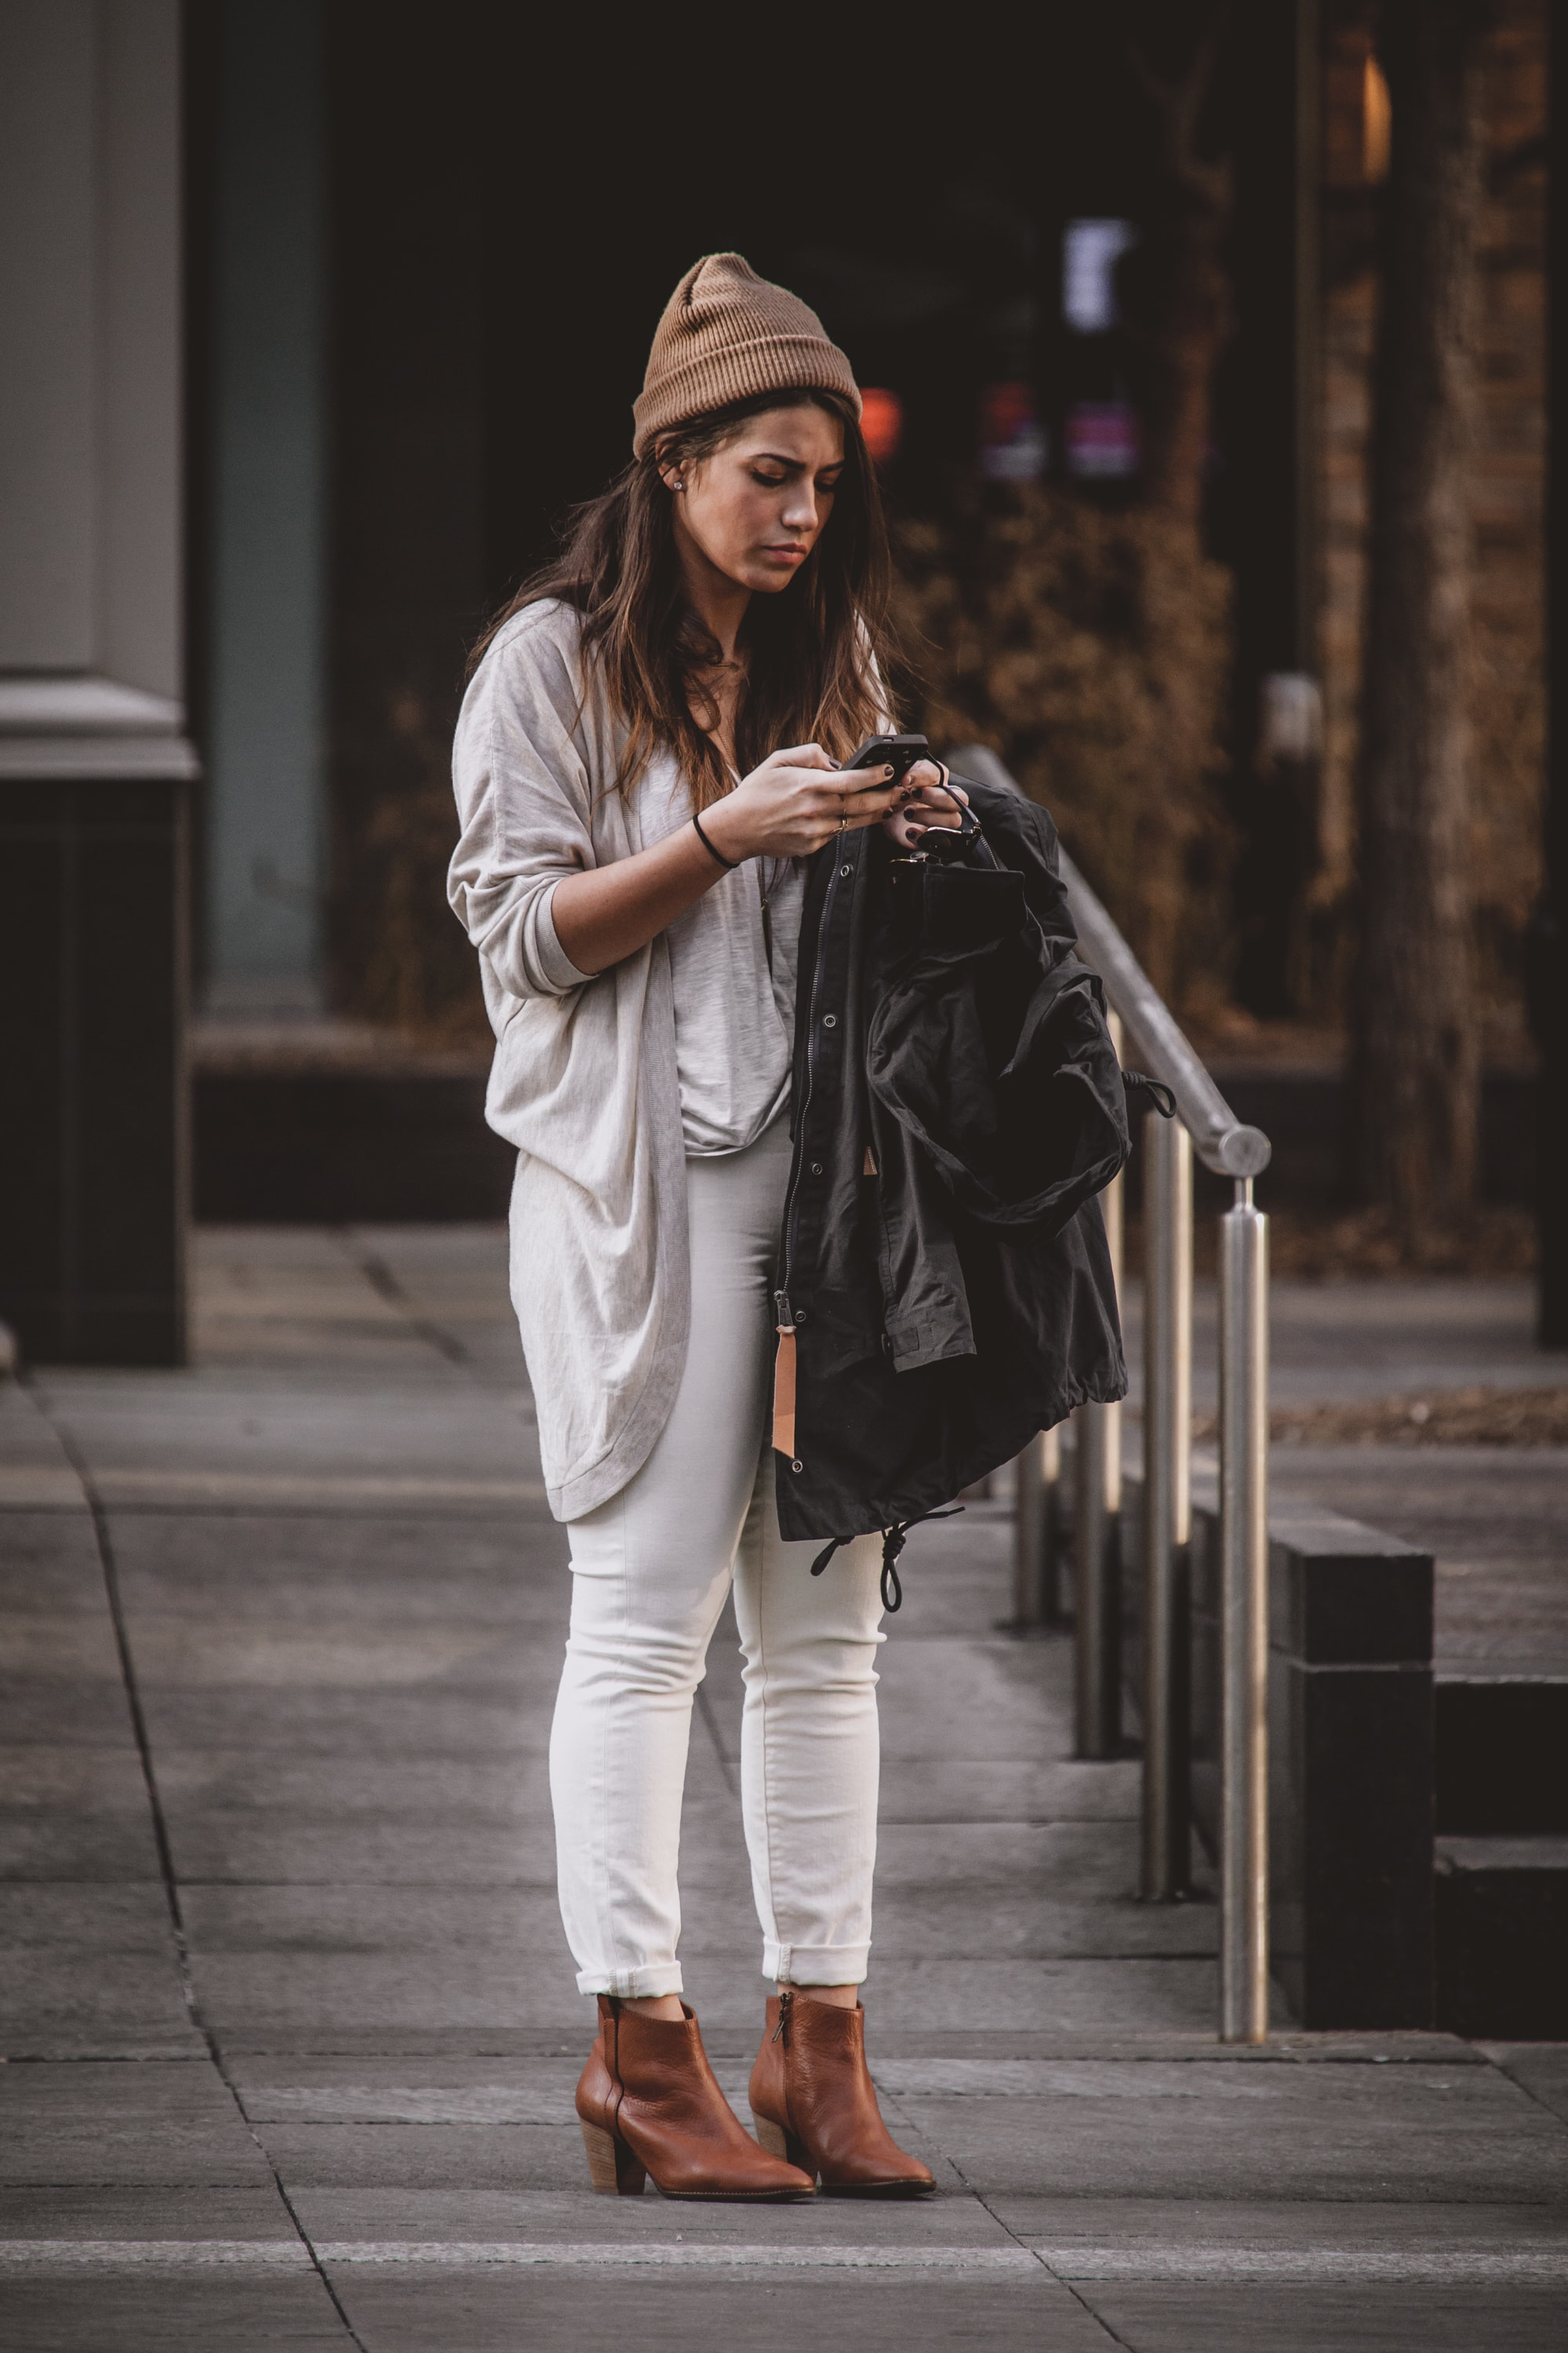 photography of woman in gray cardigan using her mobile phone